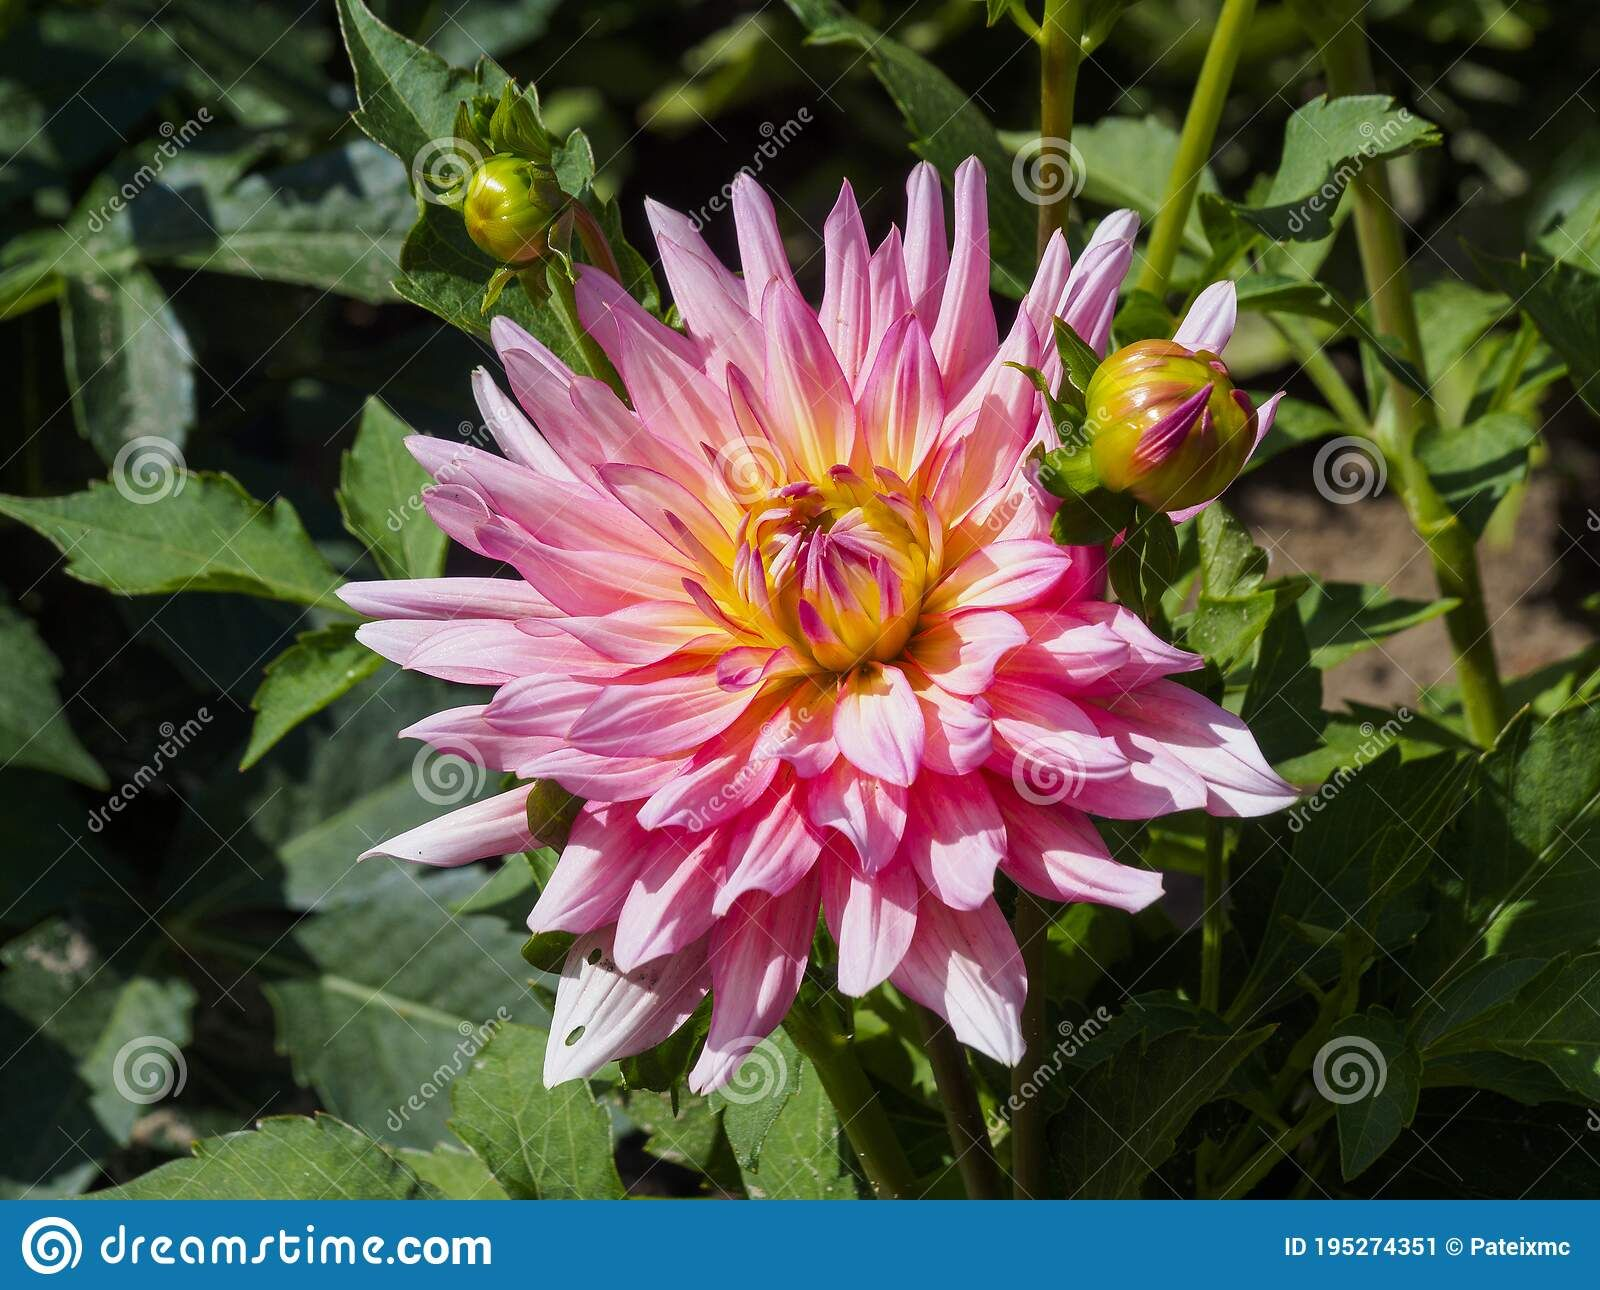 Pin On Dreamstime Stock Photography